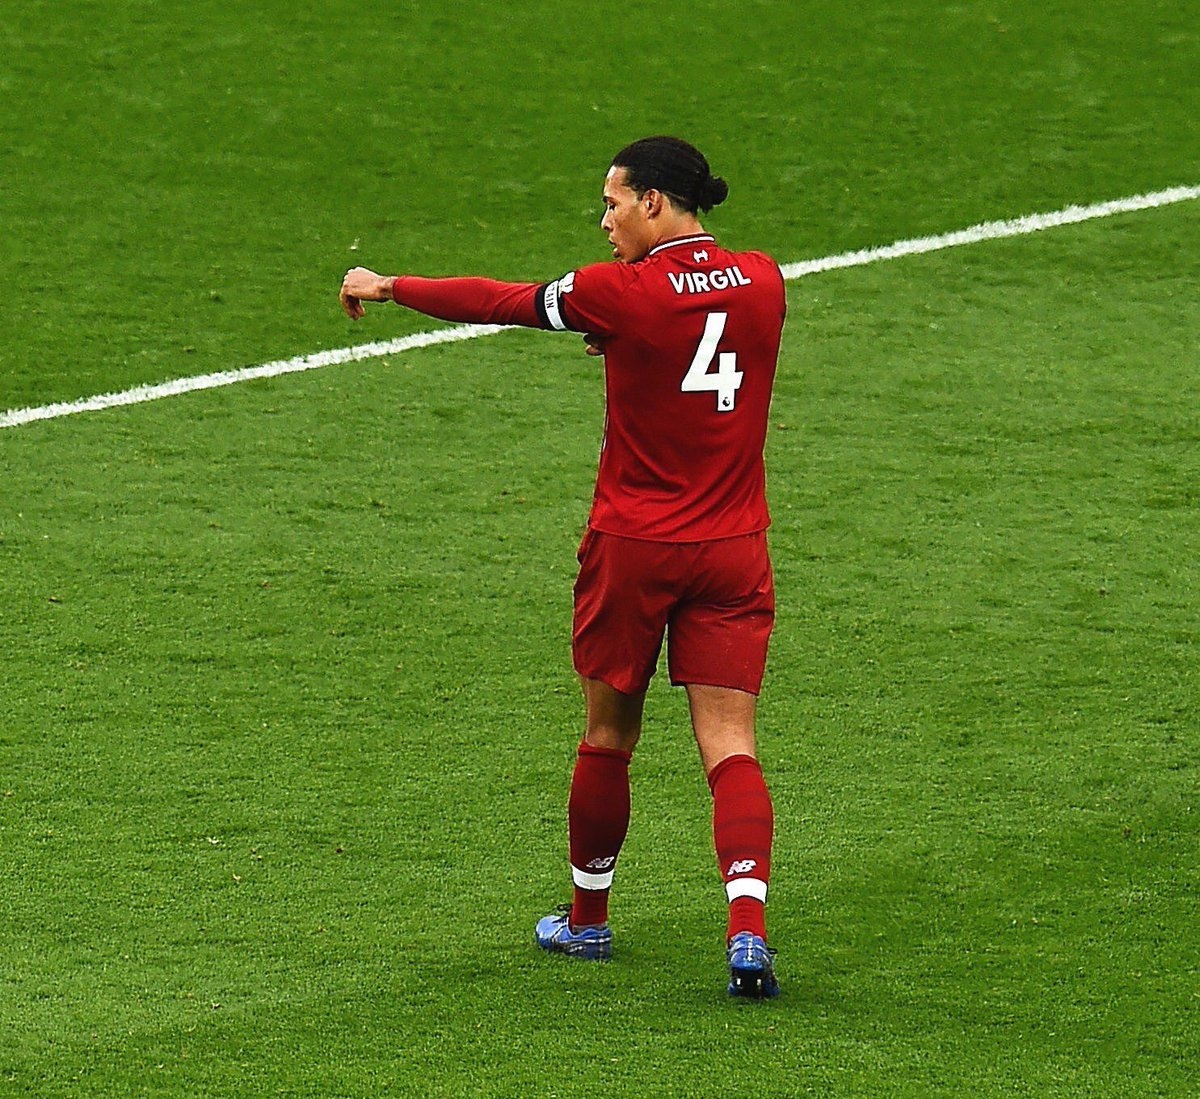 Happy Birthday My Leader @VirgilvDijk ❤❤#ليفربول#Liverpool